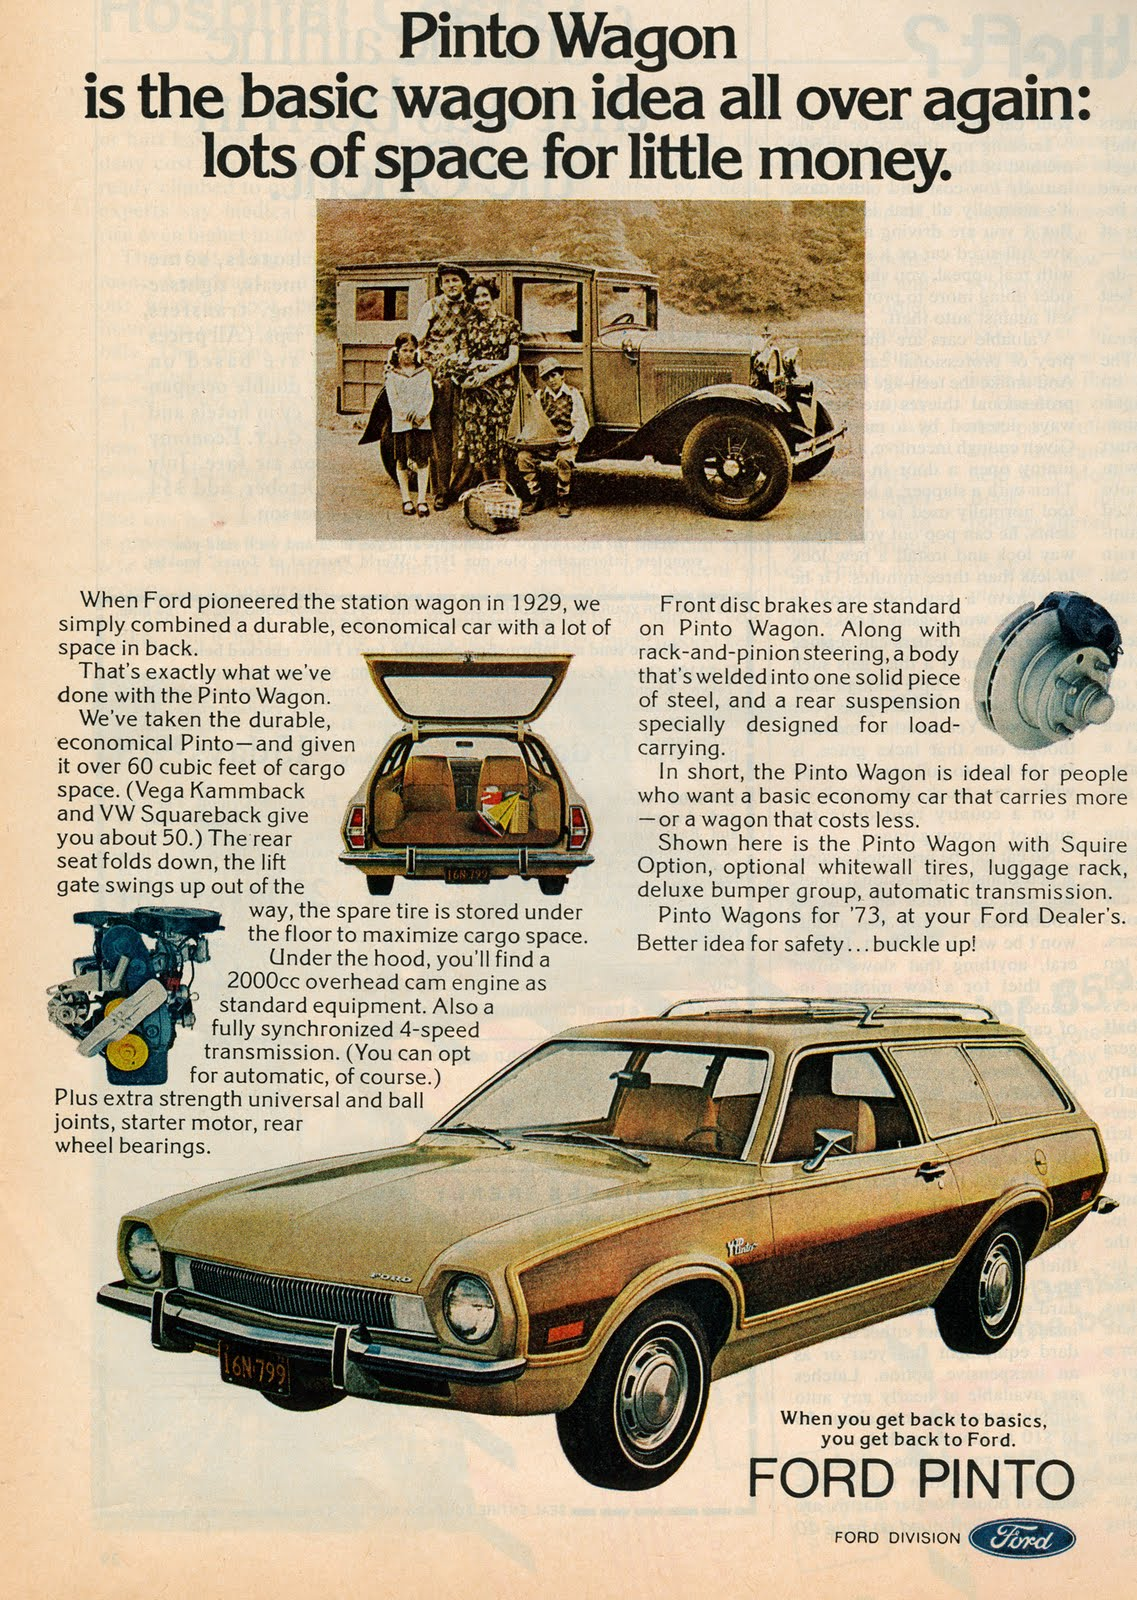 ford pinto paper 1971 ford pinto a popular car for the decade, it was produced by the ford motor company, the subcompact pinto is today best known for its propensity to combust.